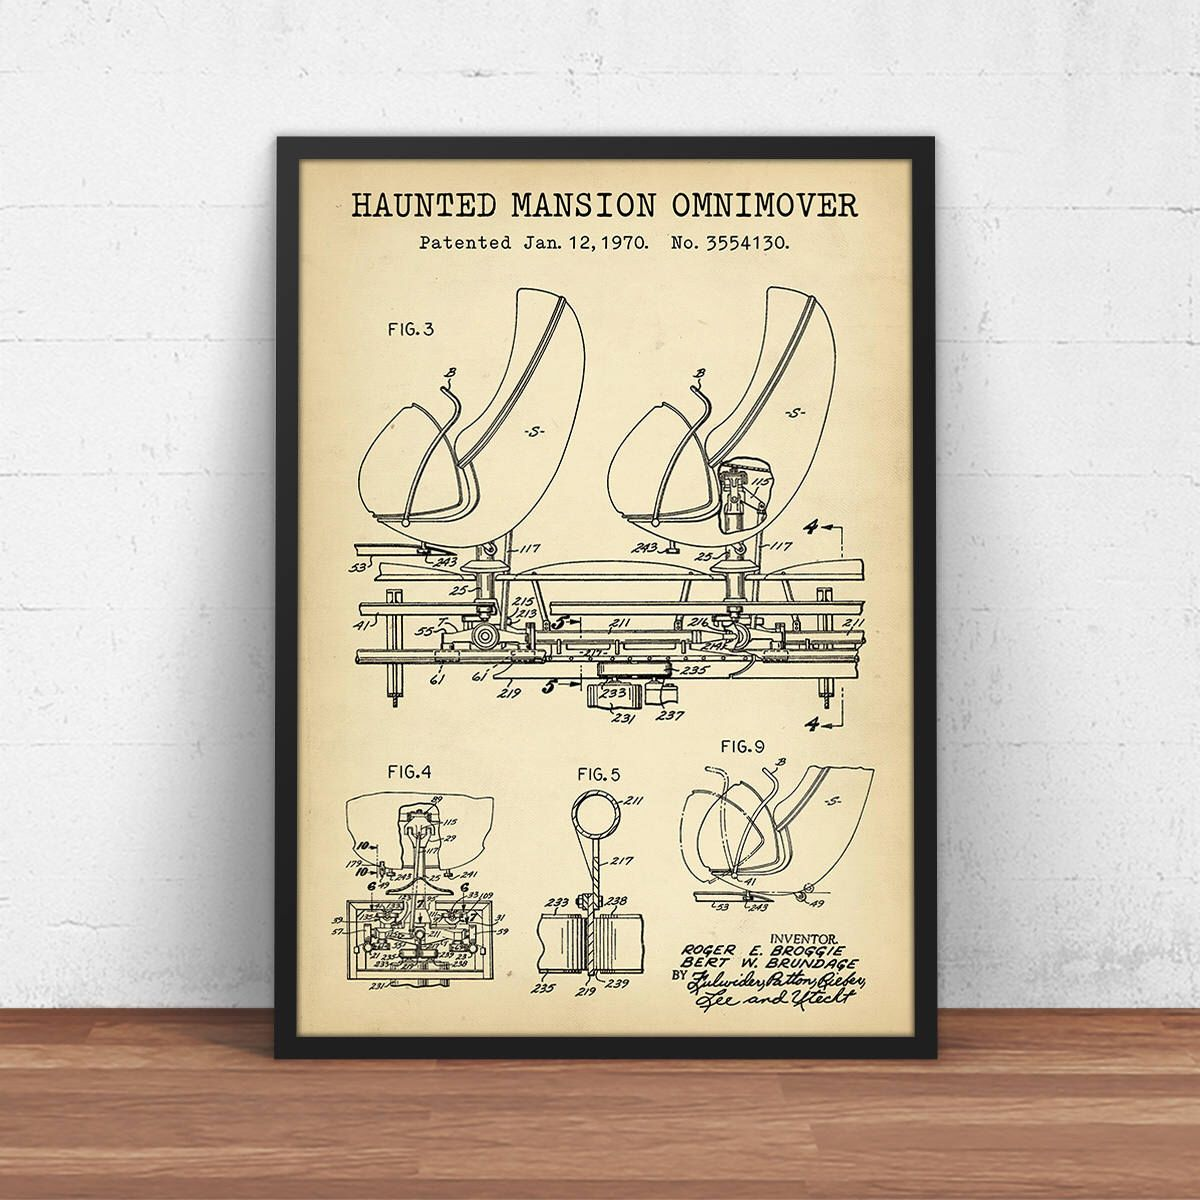 Haunted Mansion Ride Omnimover Patent Print Disneyland Art Digital Download Disney World Blueprint Art Kids Room Decor Children s Gift